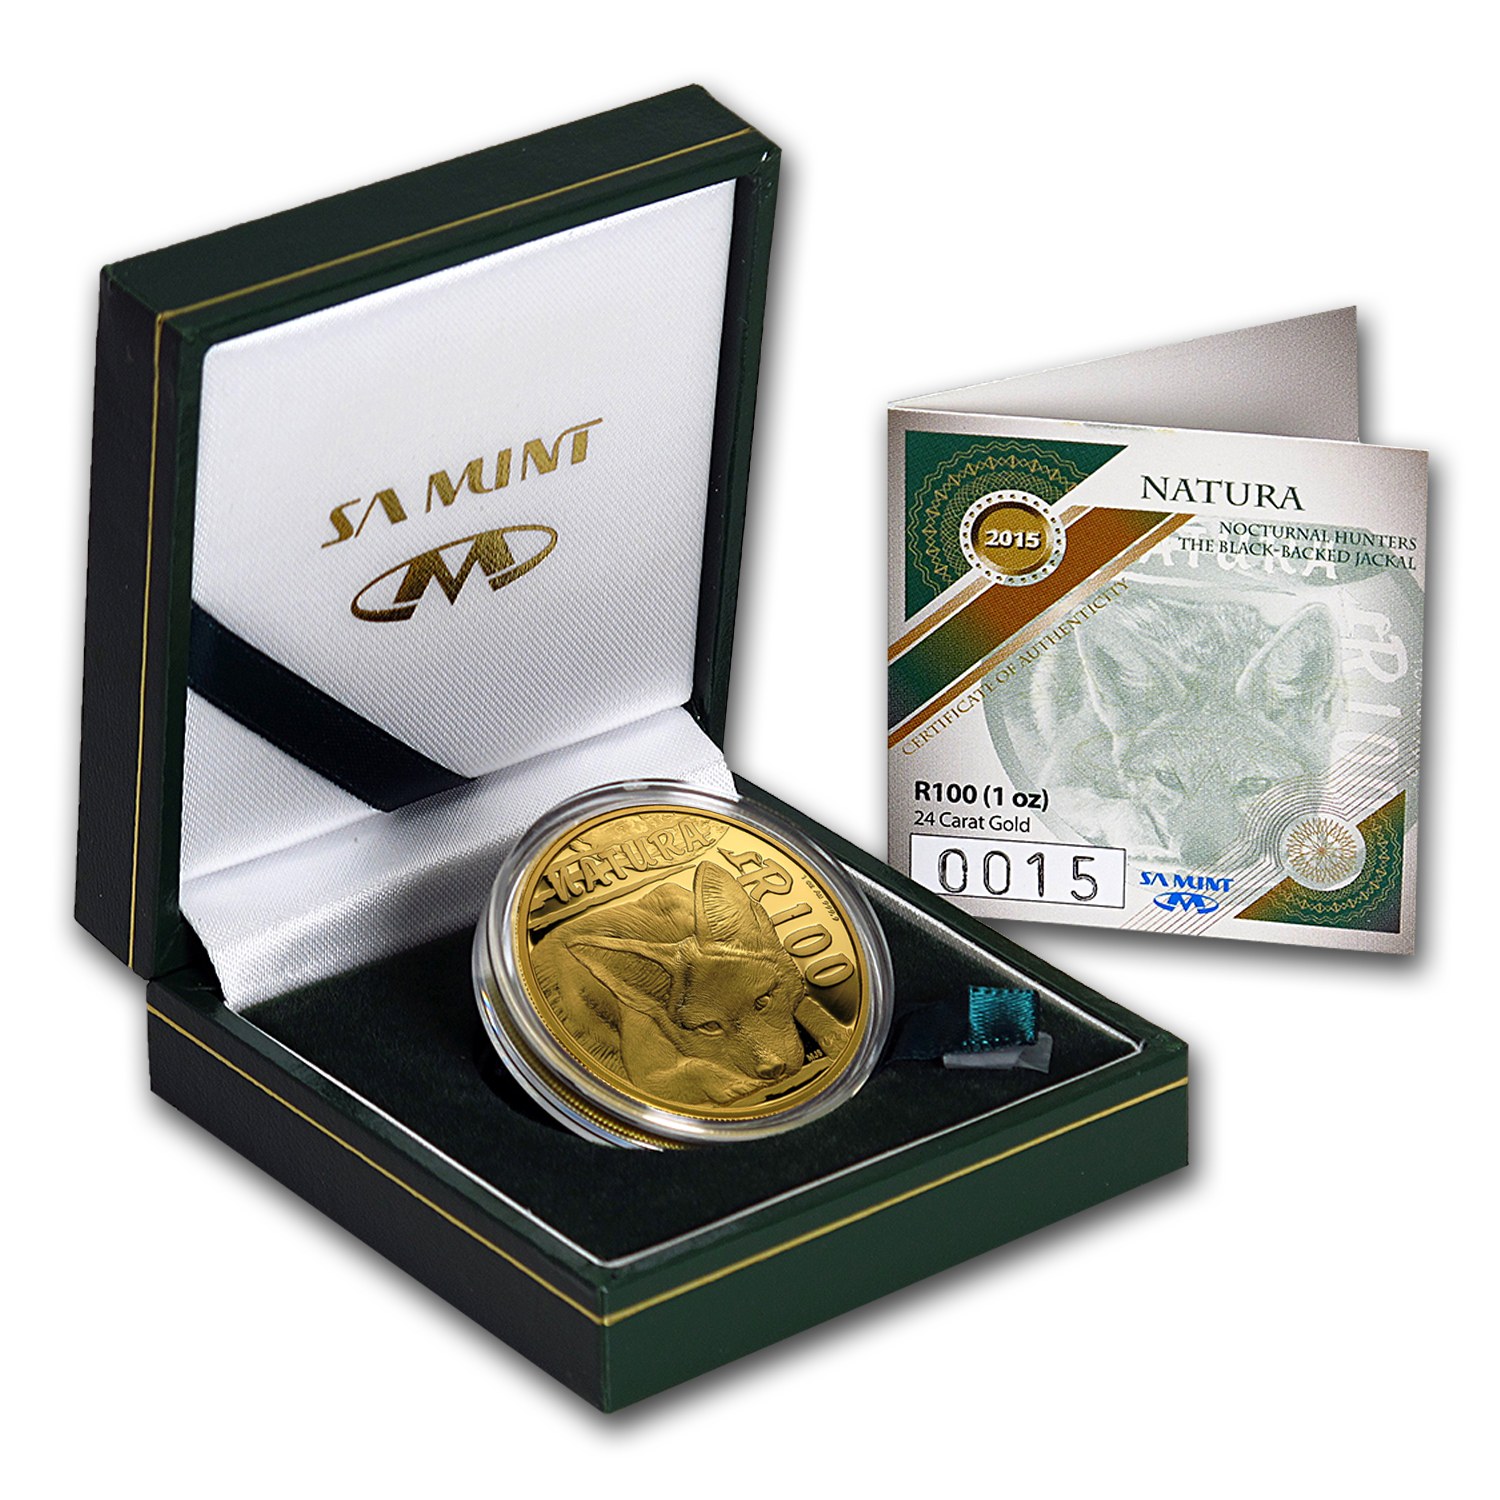 2015 S. Africa 1 oz Proof Gold Natura Nocturnal Hunters (Jackal)